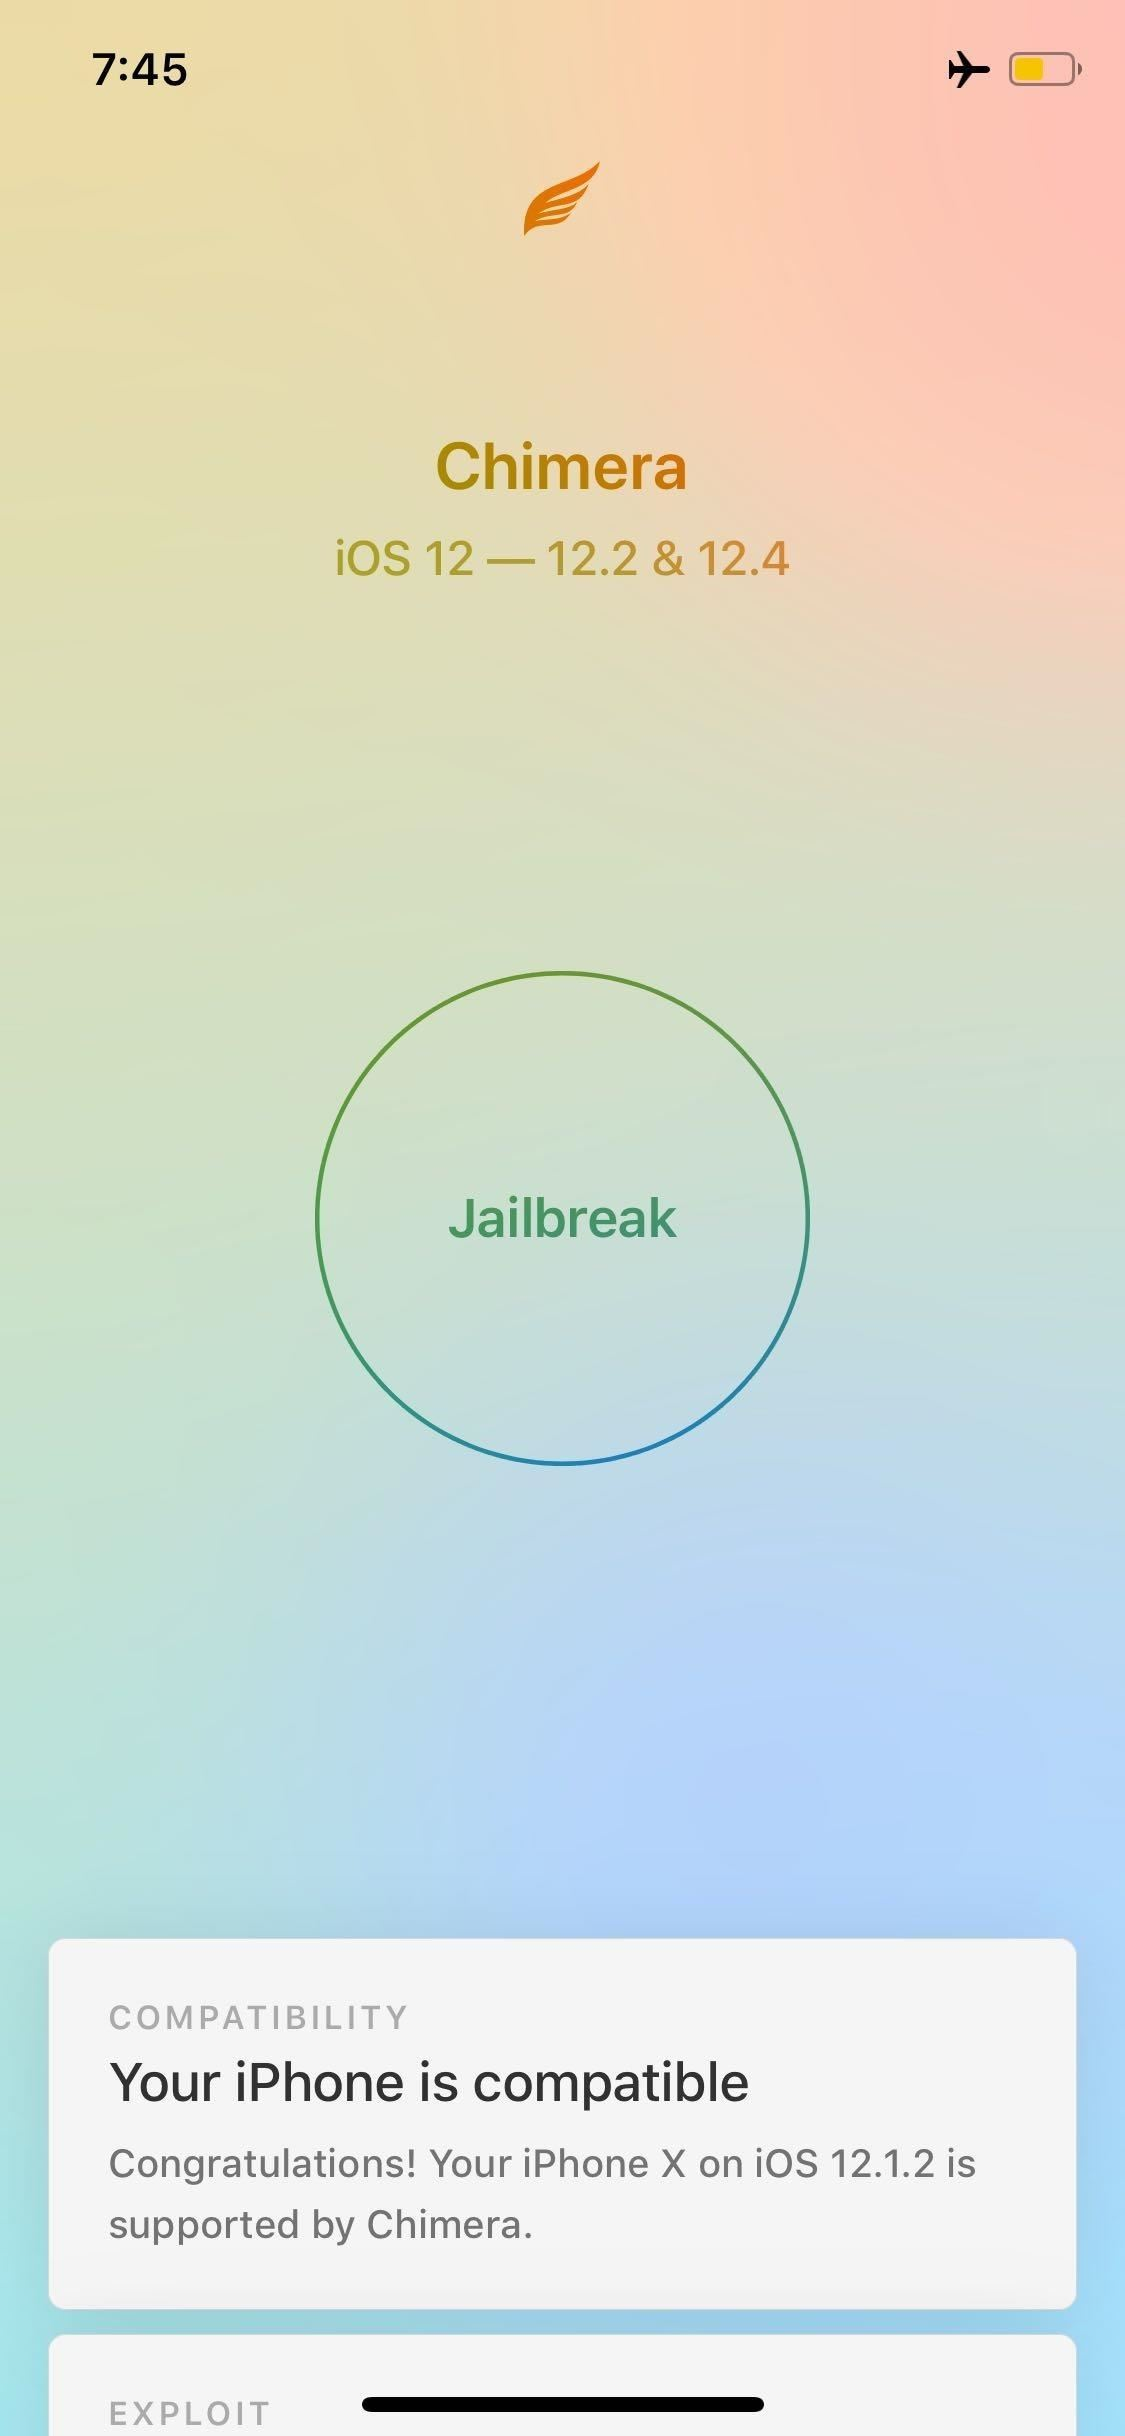 To re-enable a semi-bound jailbreak to restore access to Sileo